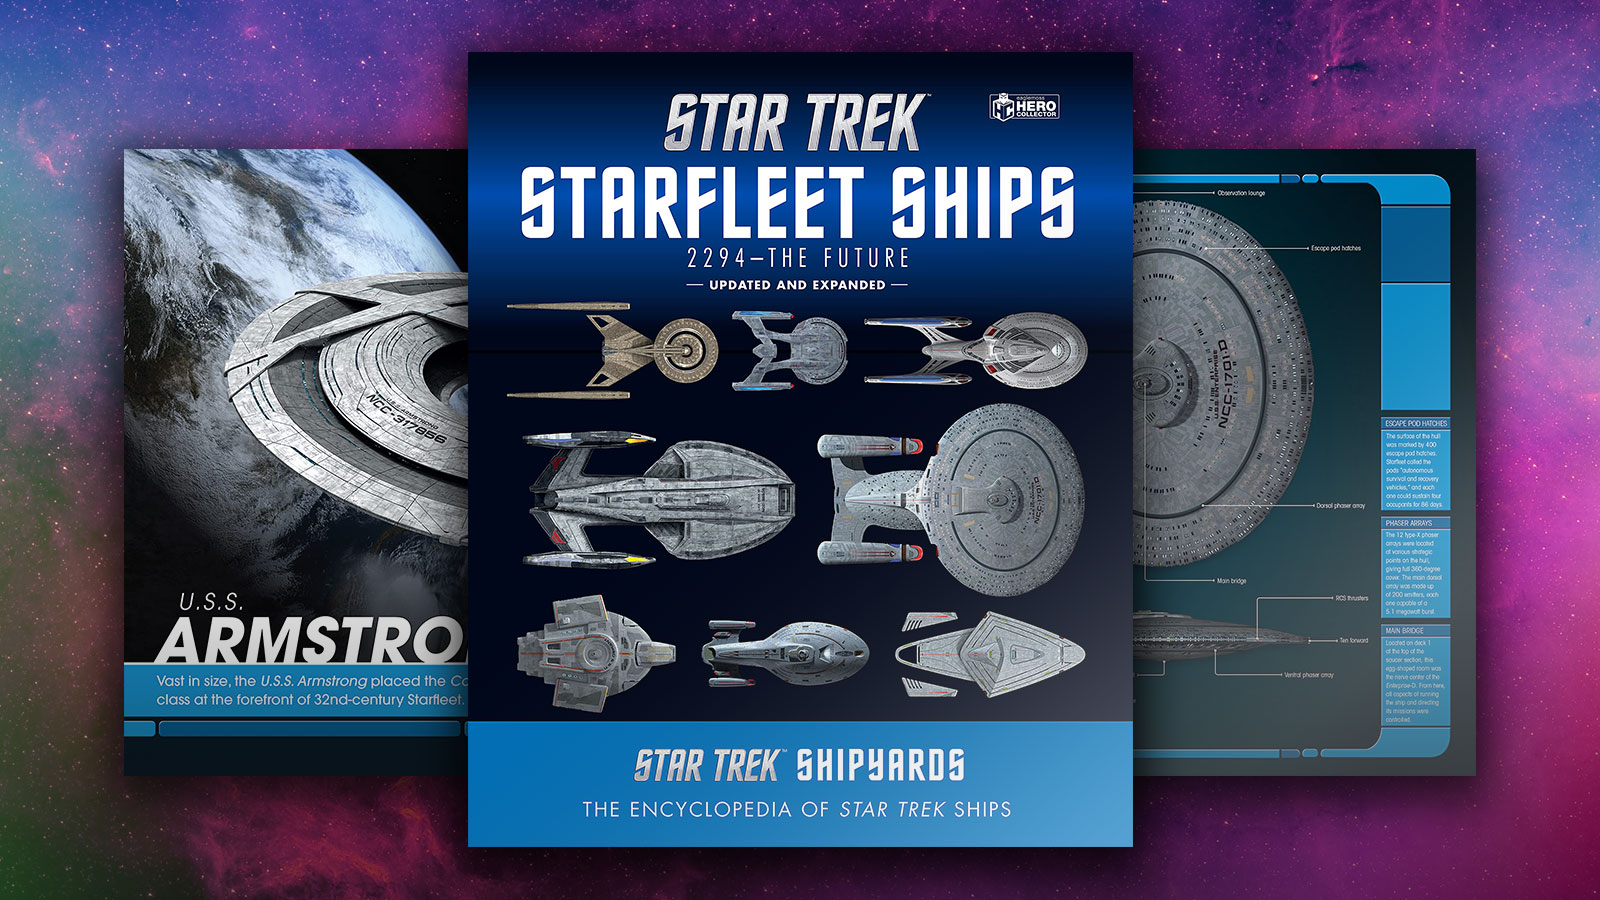 Star Trek Shipyards Starfleet Starships: 2294 To The Future Review: Newly Expanded Edition Adds Ships From 'Discovery' And 'Picard'